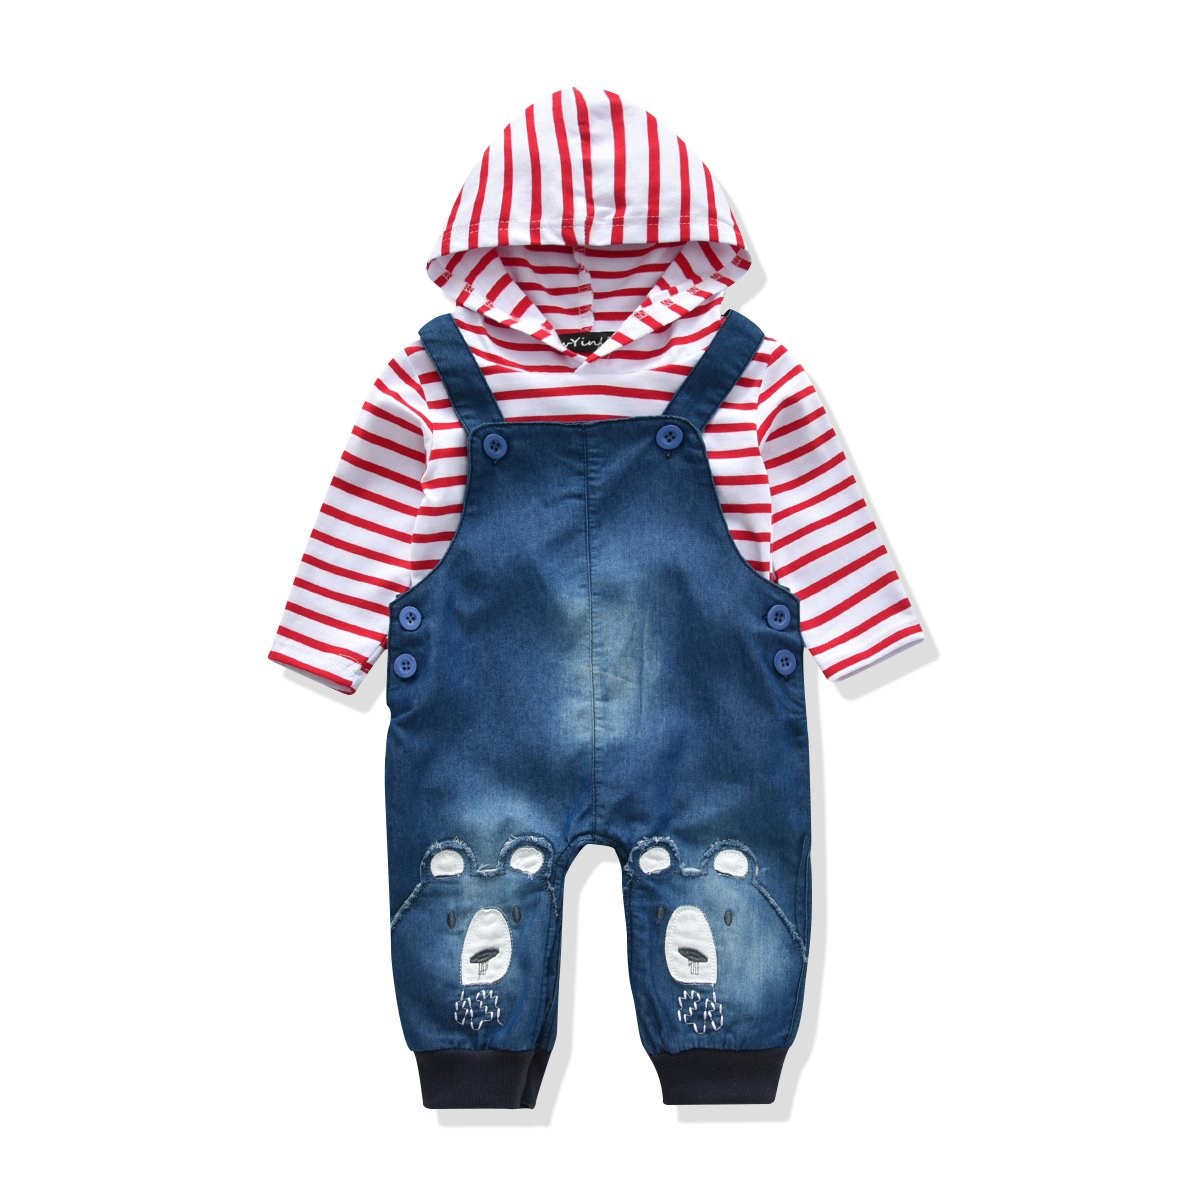 14894a4b9ab0 Amazon.com  LvYinLi Cute Baby Boys Clothes Toddler Boys  Romper ...